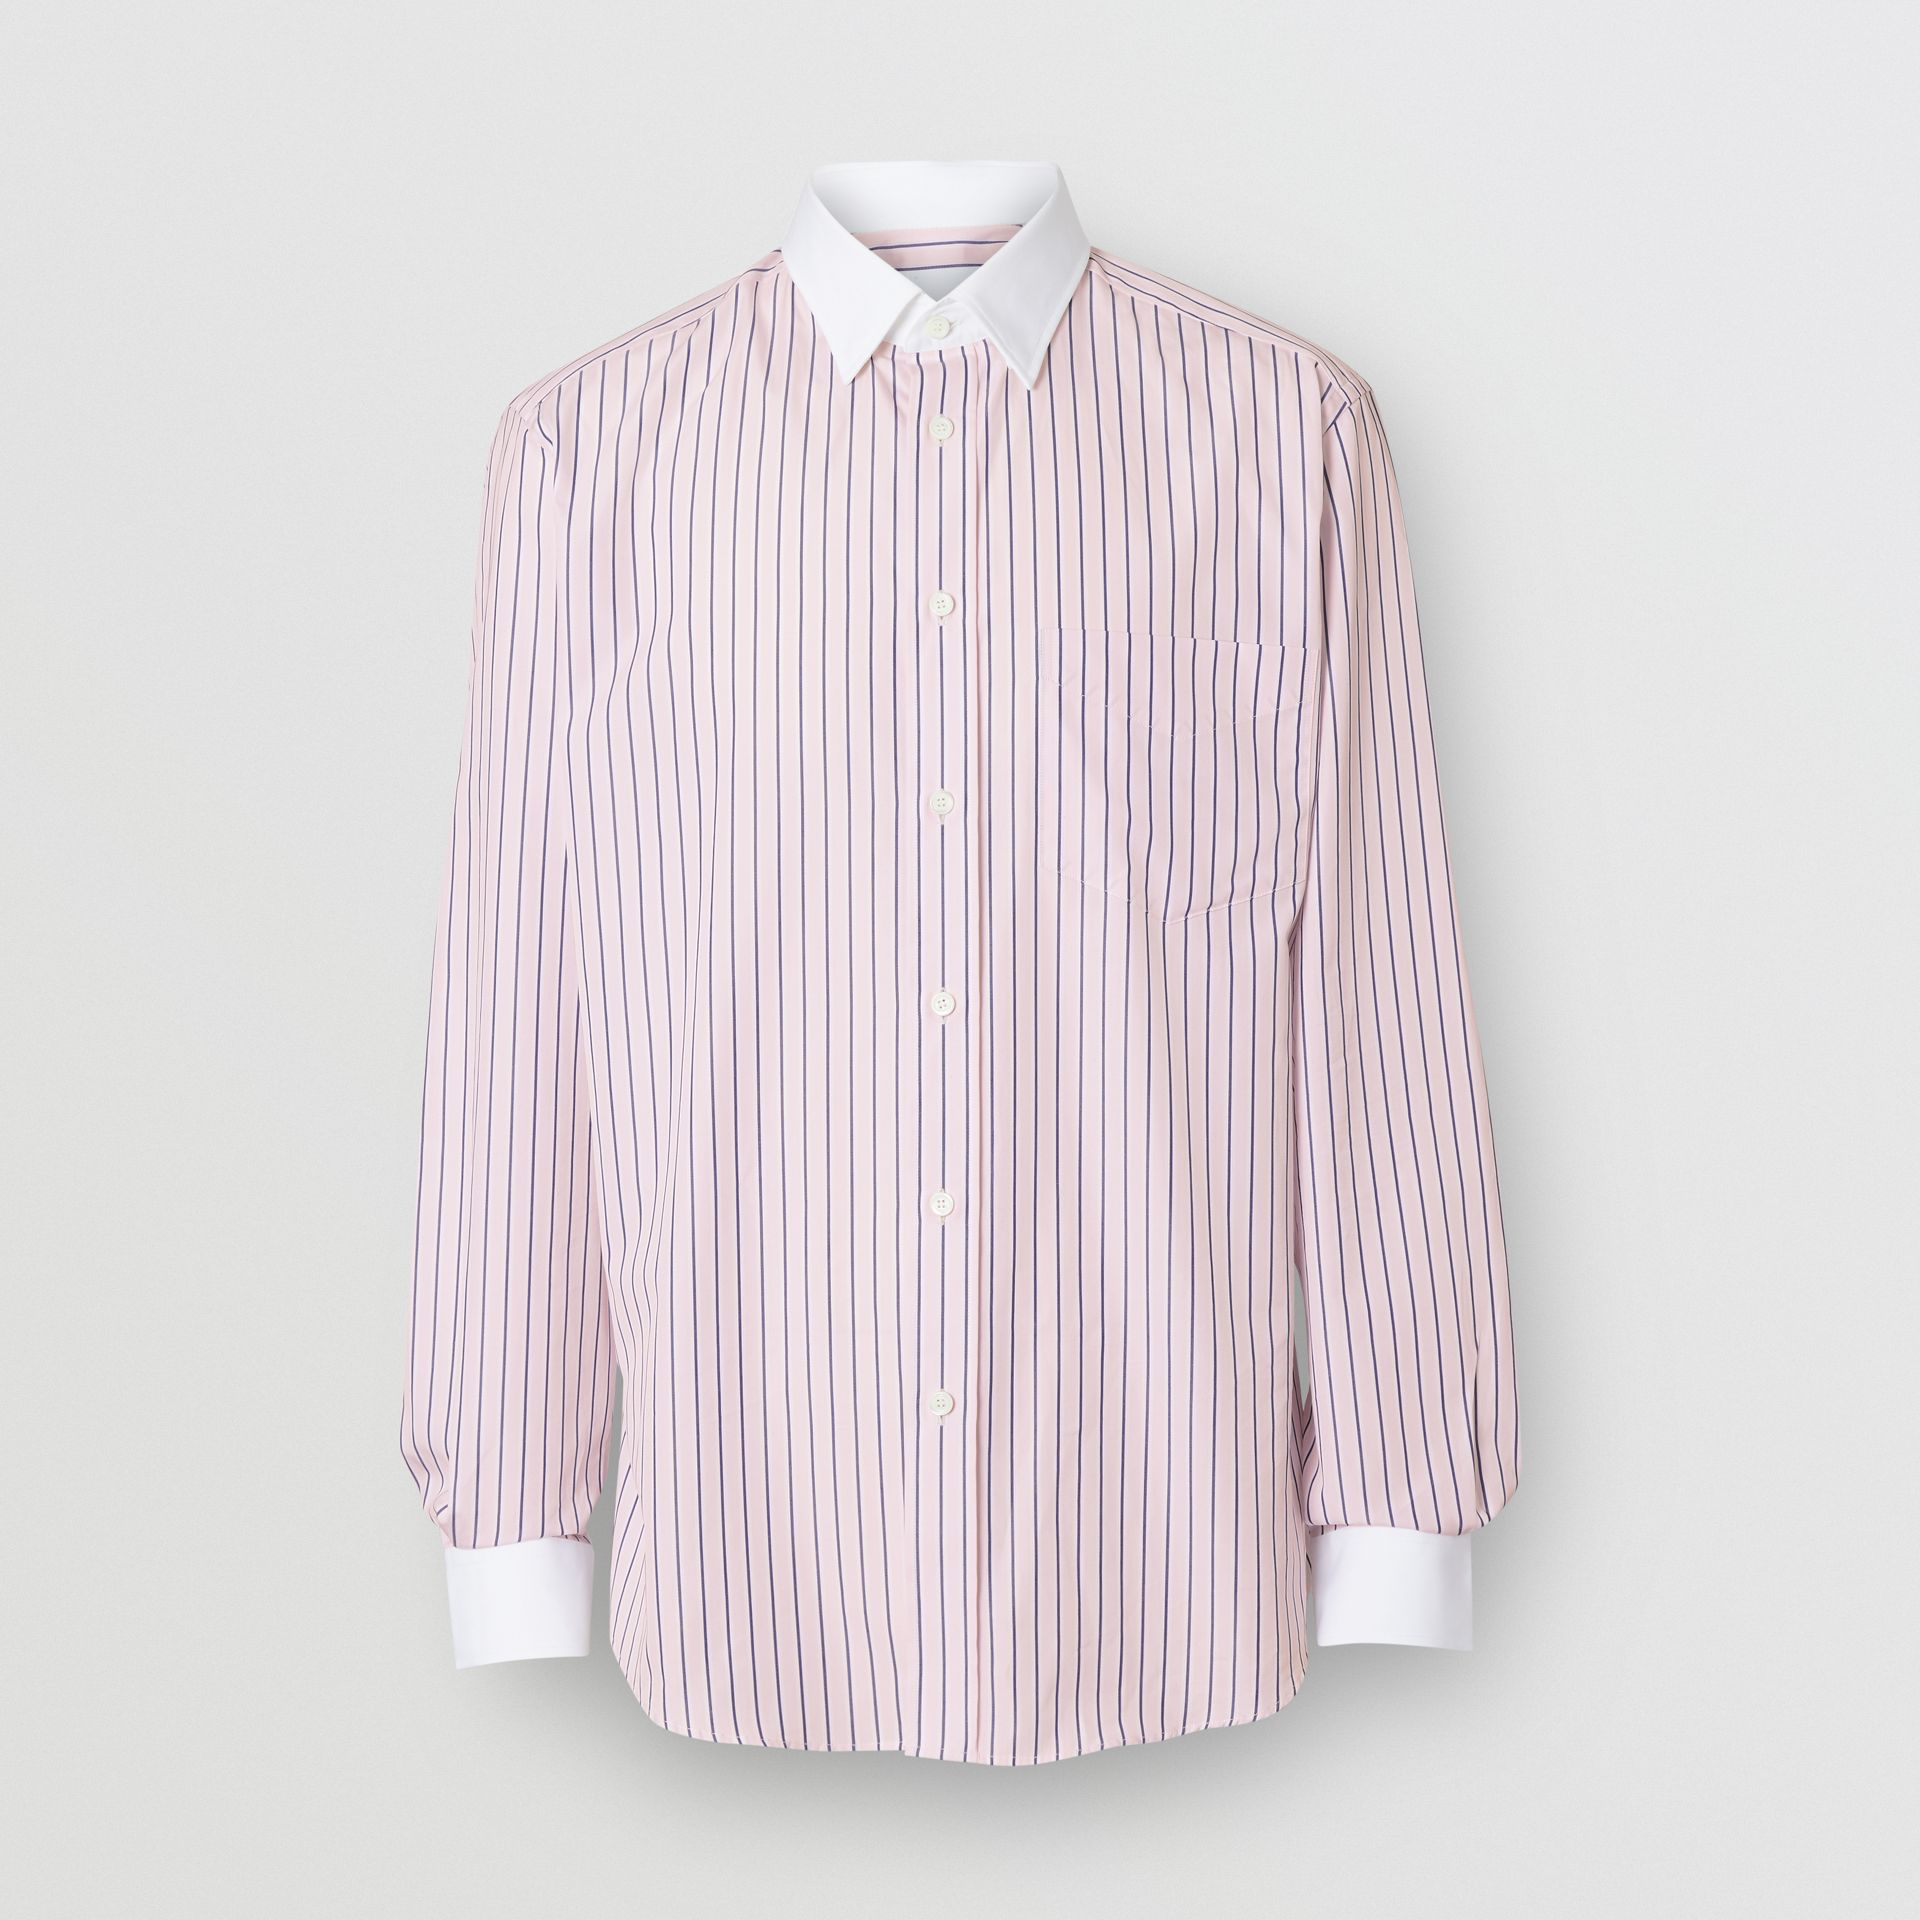 Classic Fit Monogram Motif Striped Cotton Shirt in Alabaster Pink - Men | Burberry United States - gallery image 3